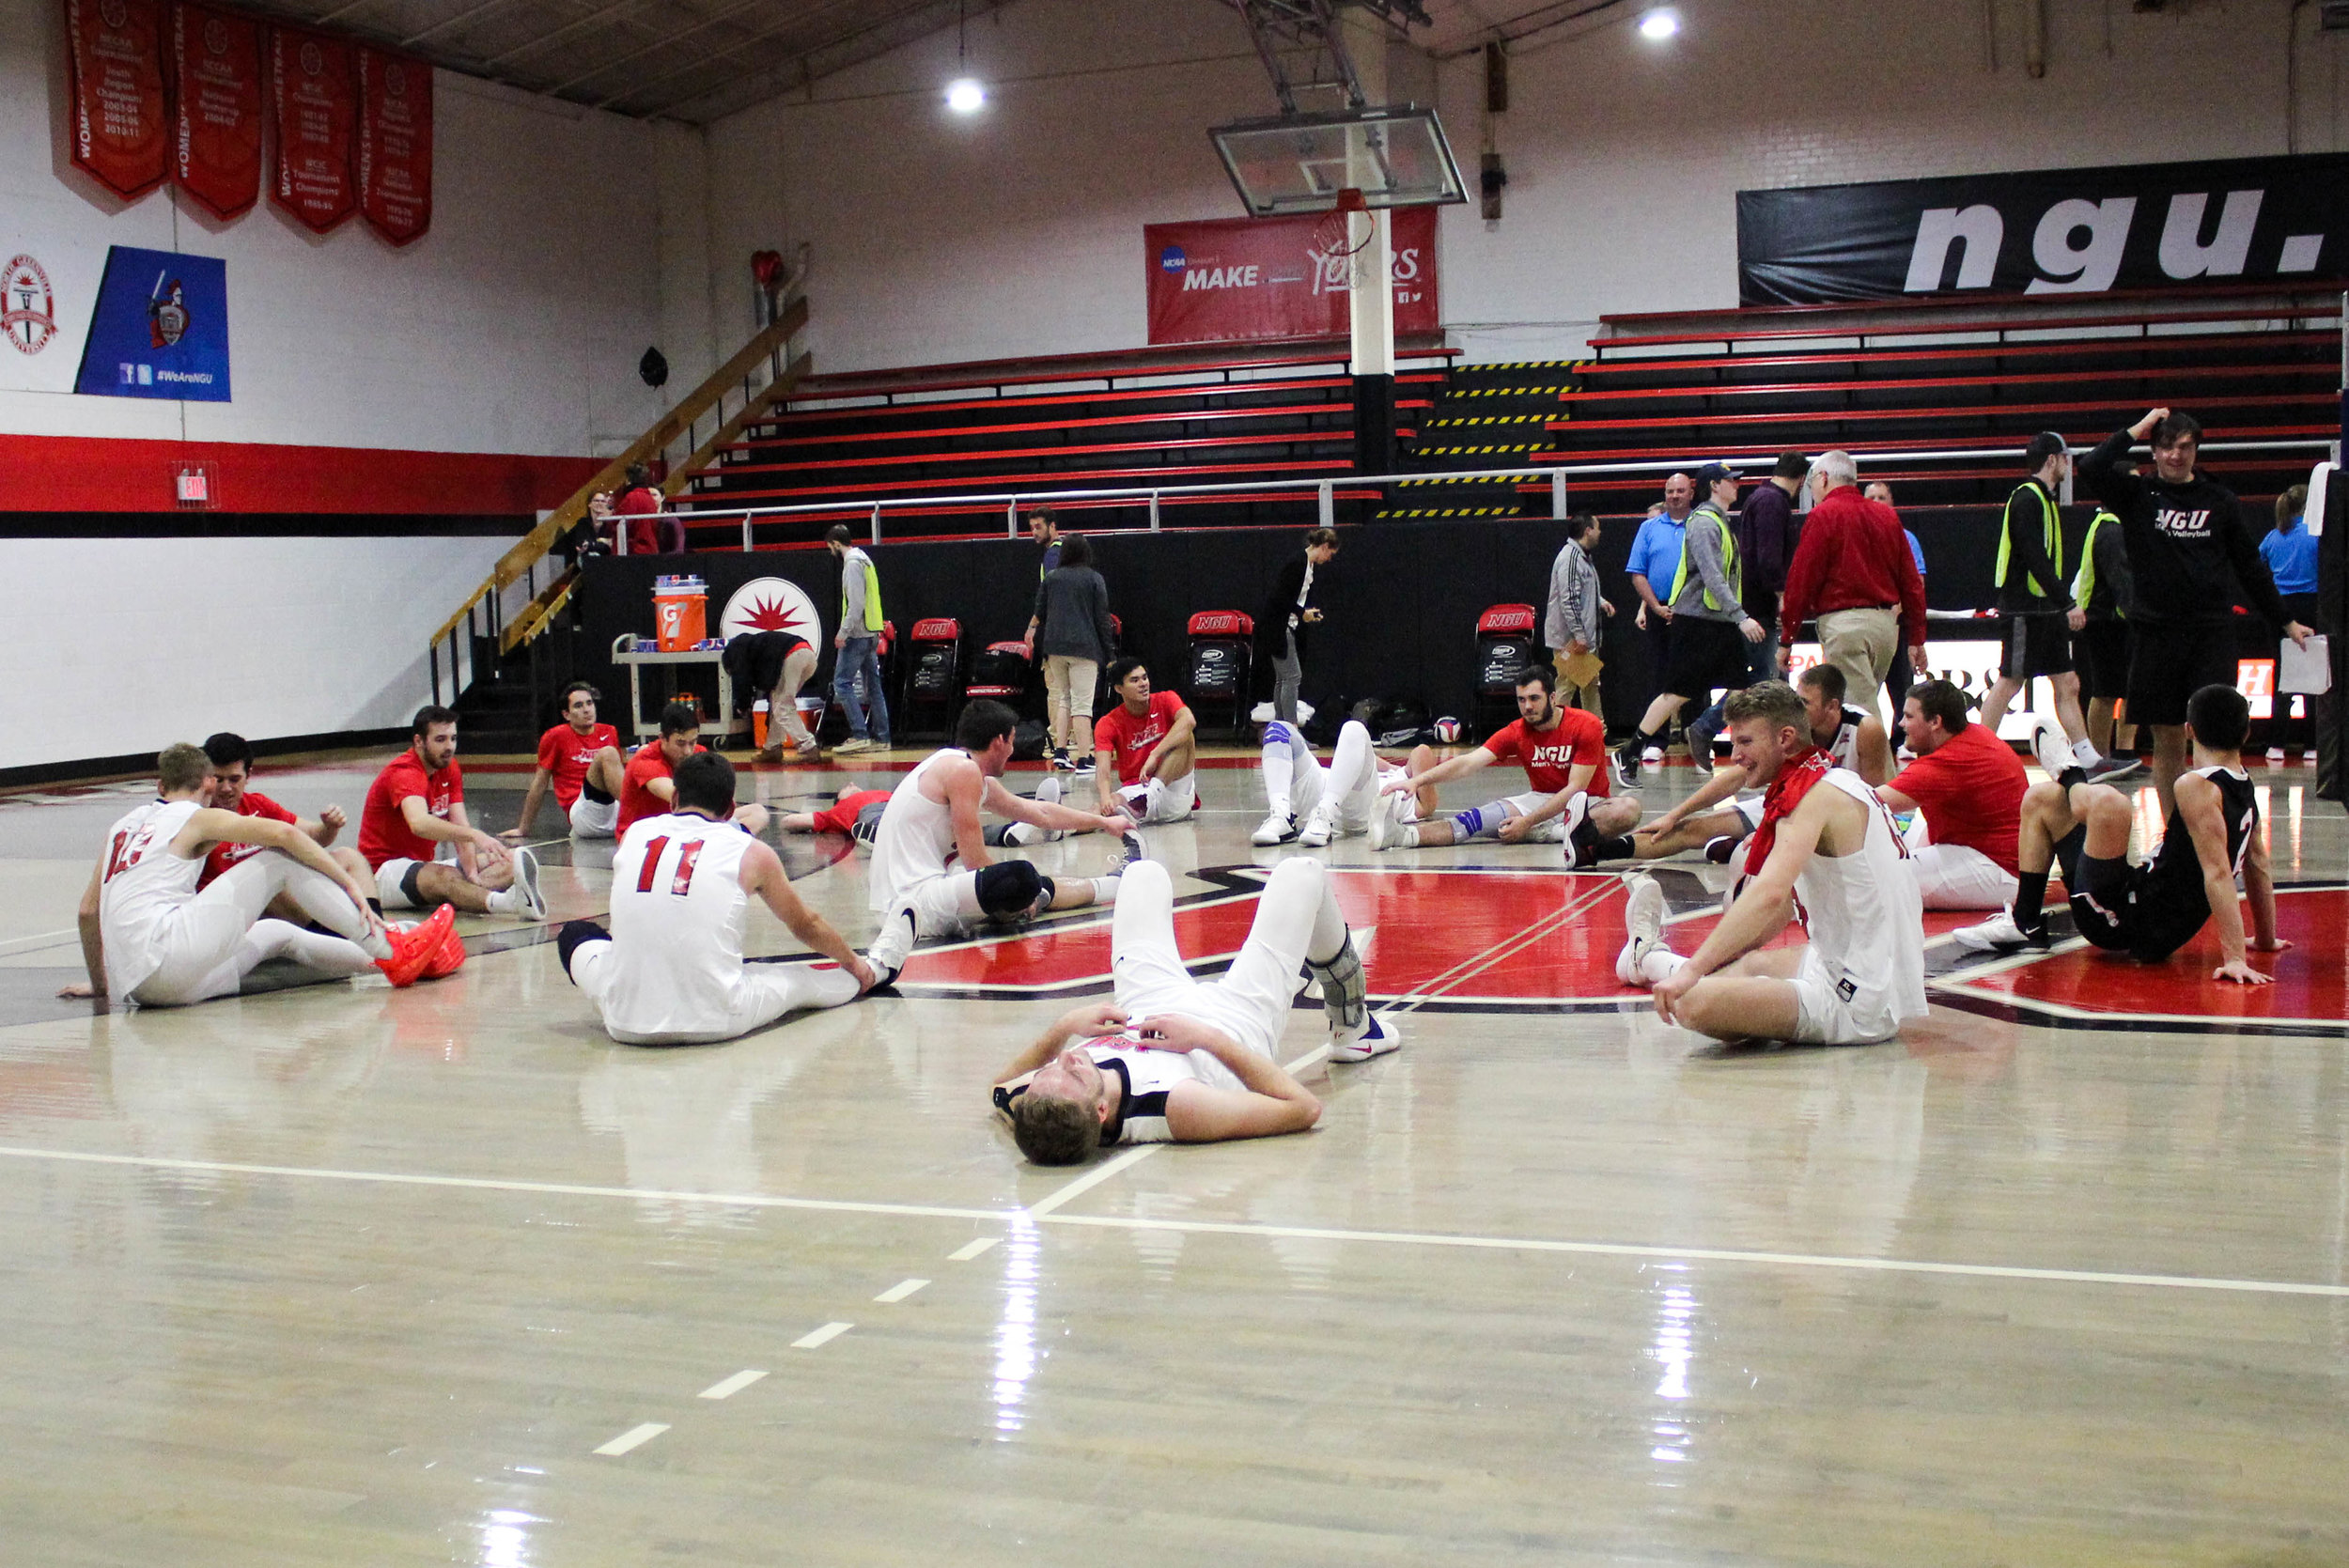 After all five sets, the team sits on the ground to stretch.